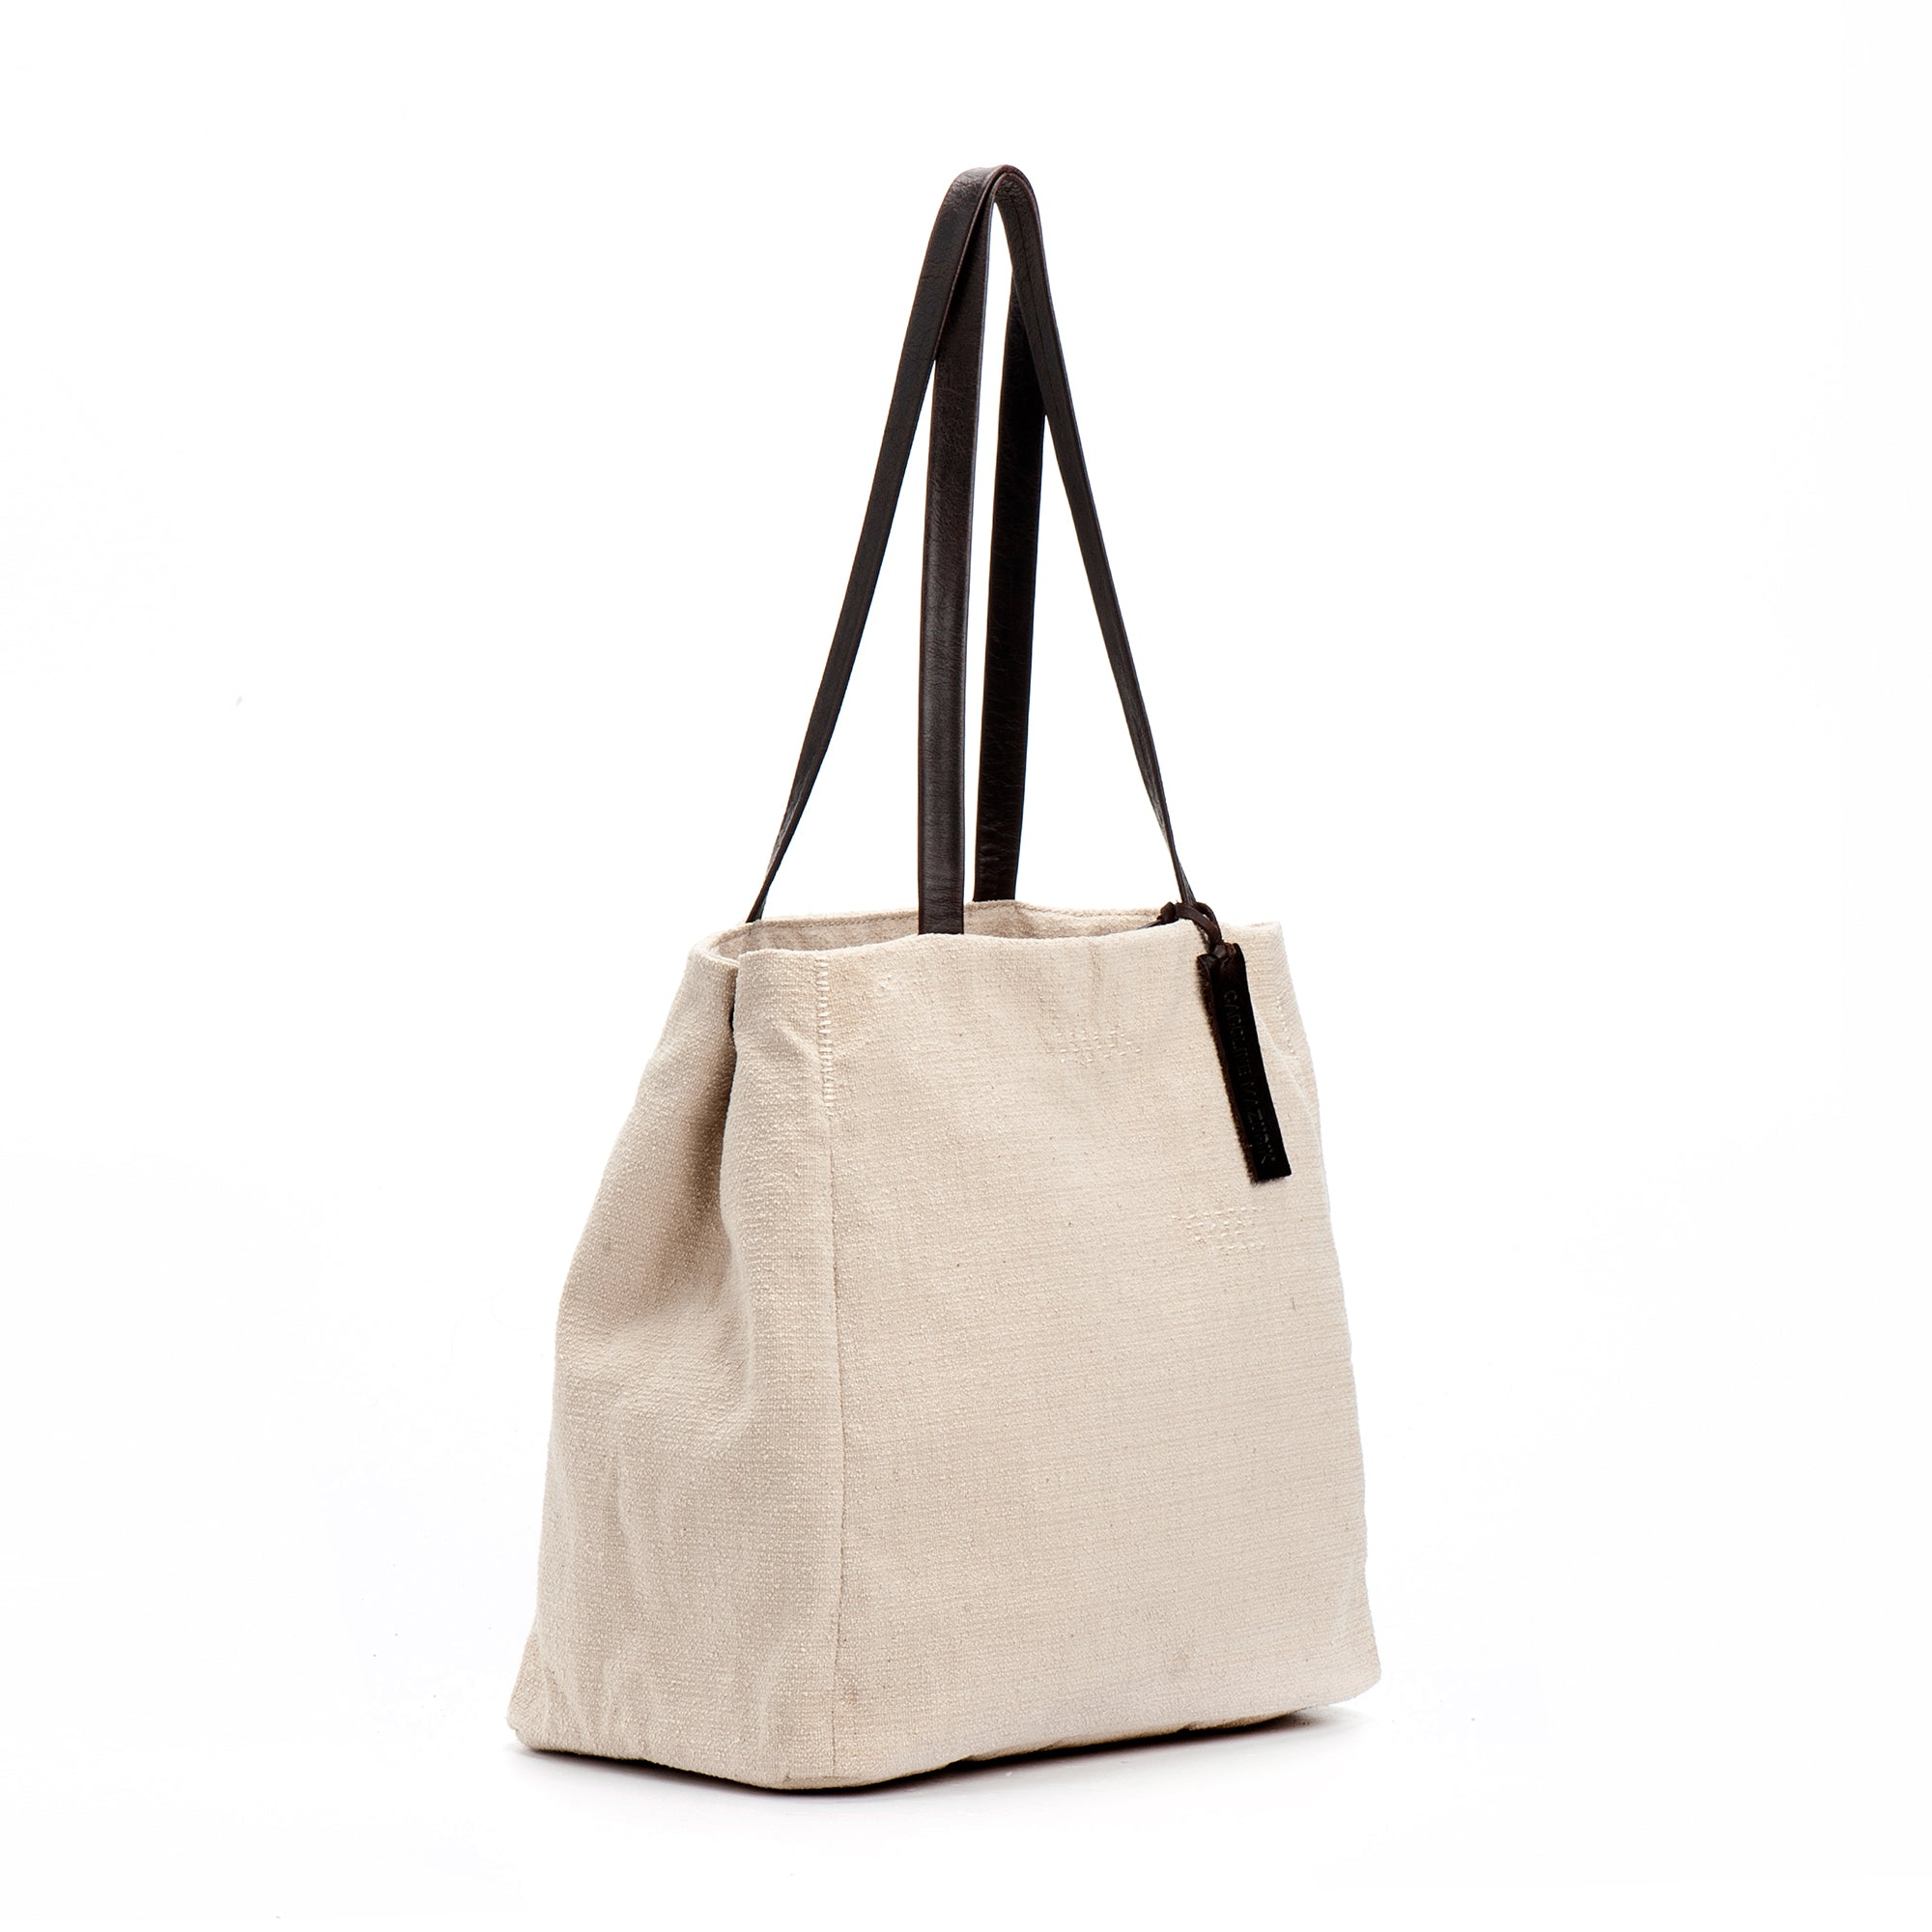 Cotton Tote with Leather handles Off-White Shoulder Woman handbag